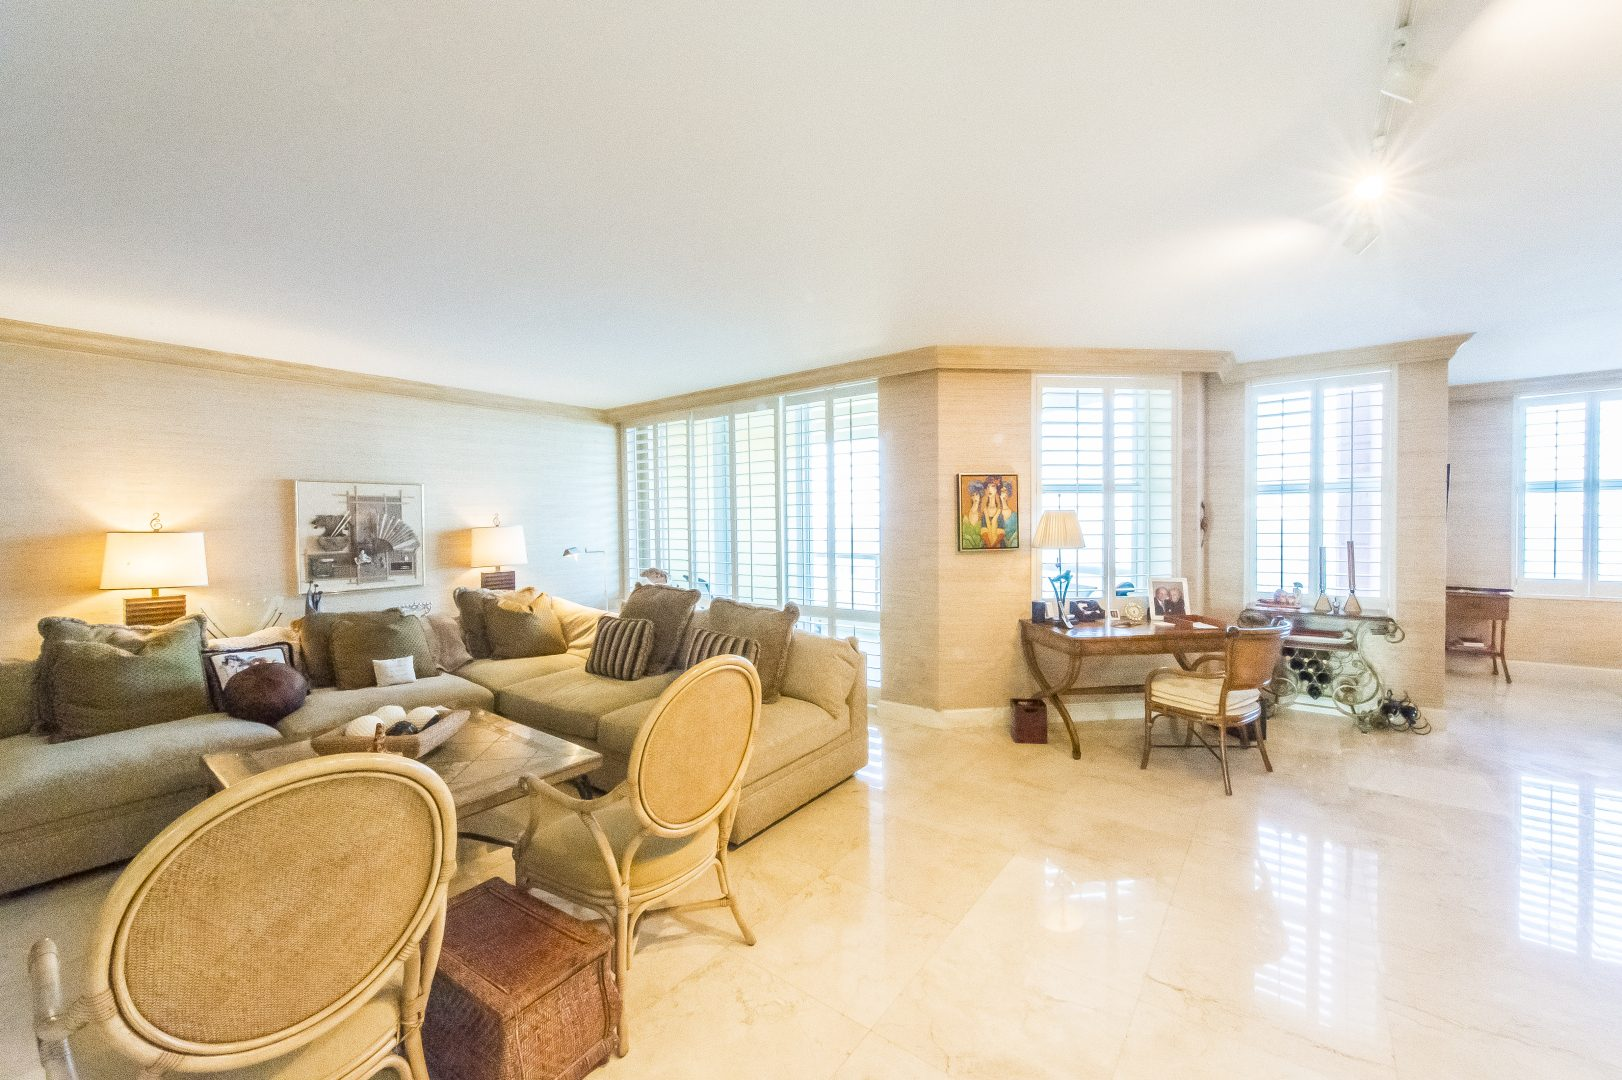 Residence 9D, Tower 1 at The Palms, Luxury Oceanfront Condominiums Fort Lauderdale, Florida 33305